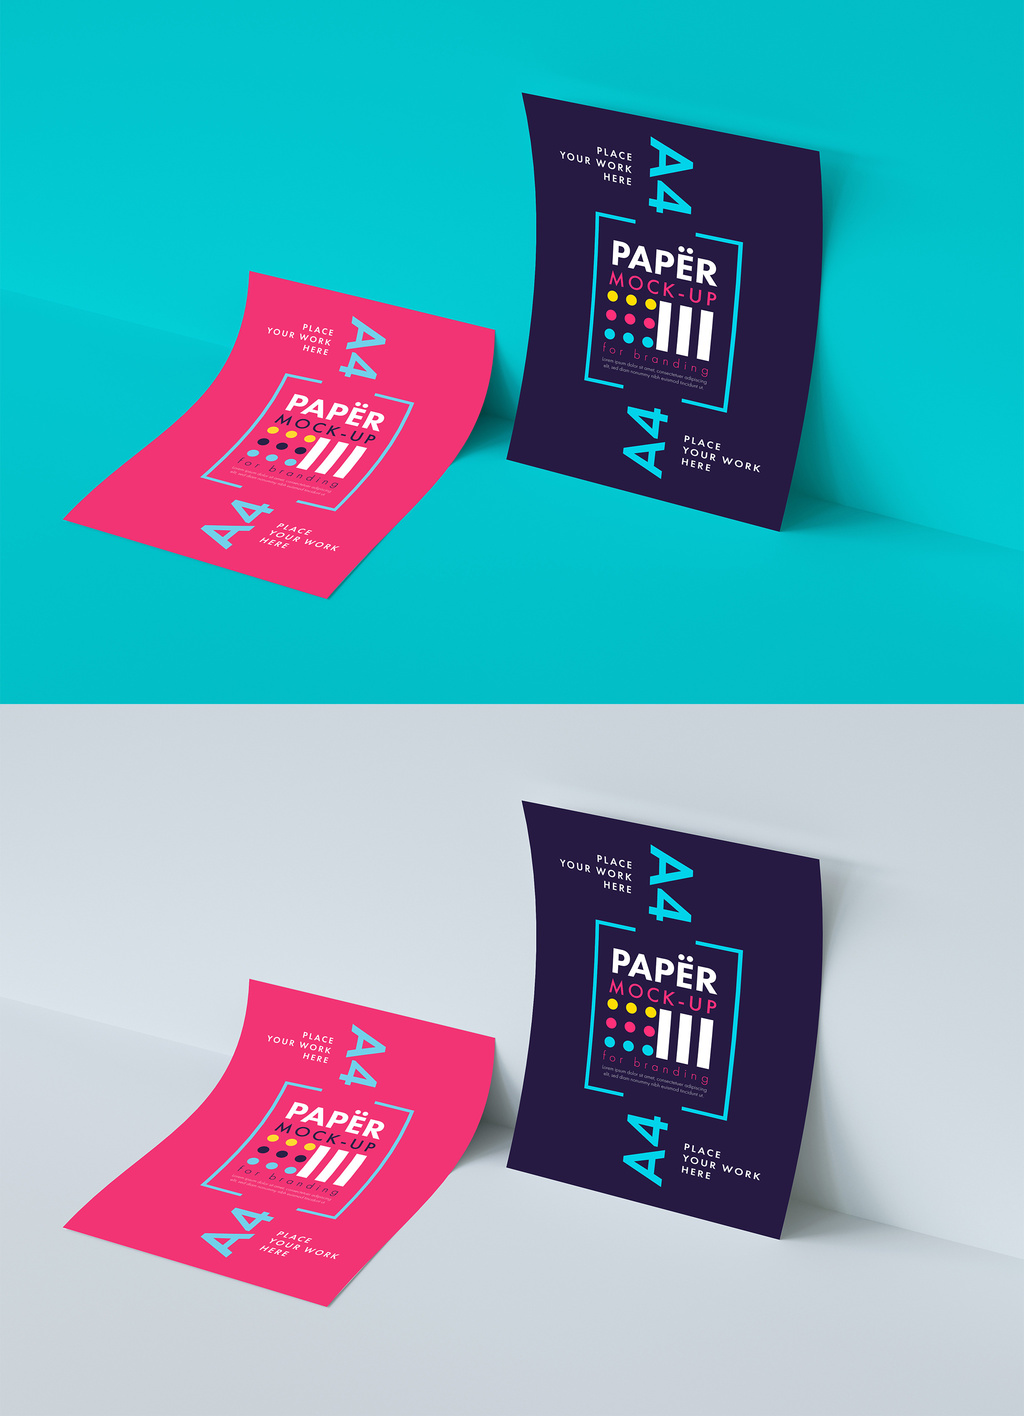 Two Pieces of Paper Mockup